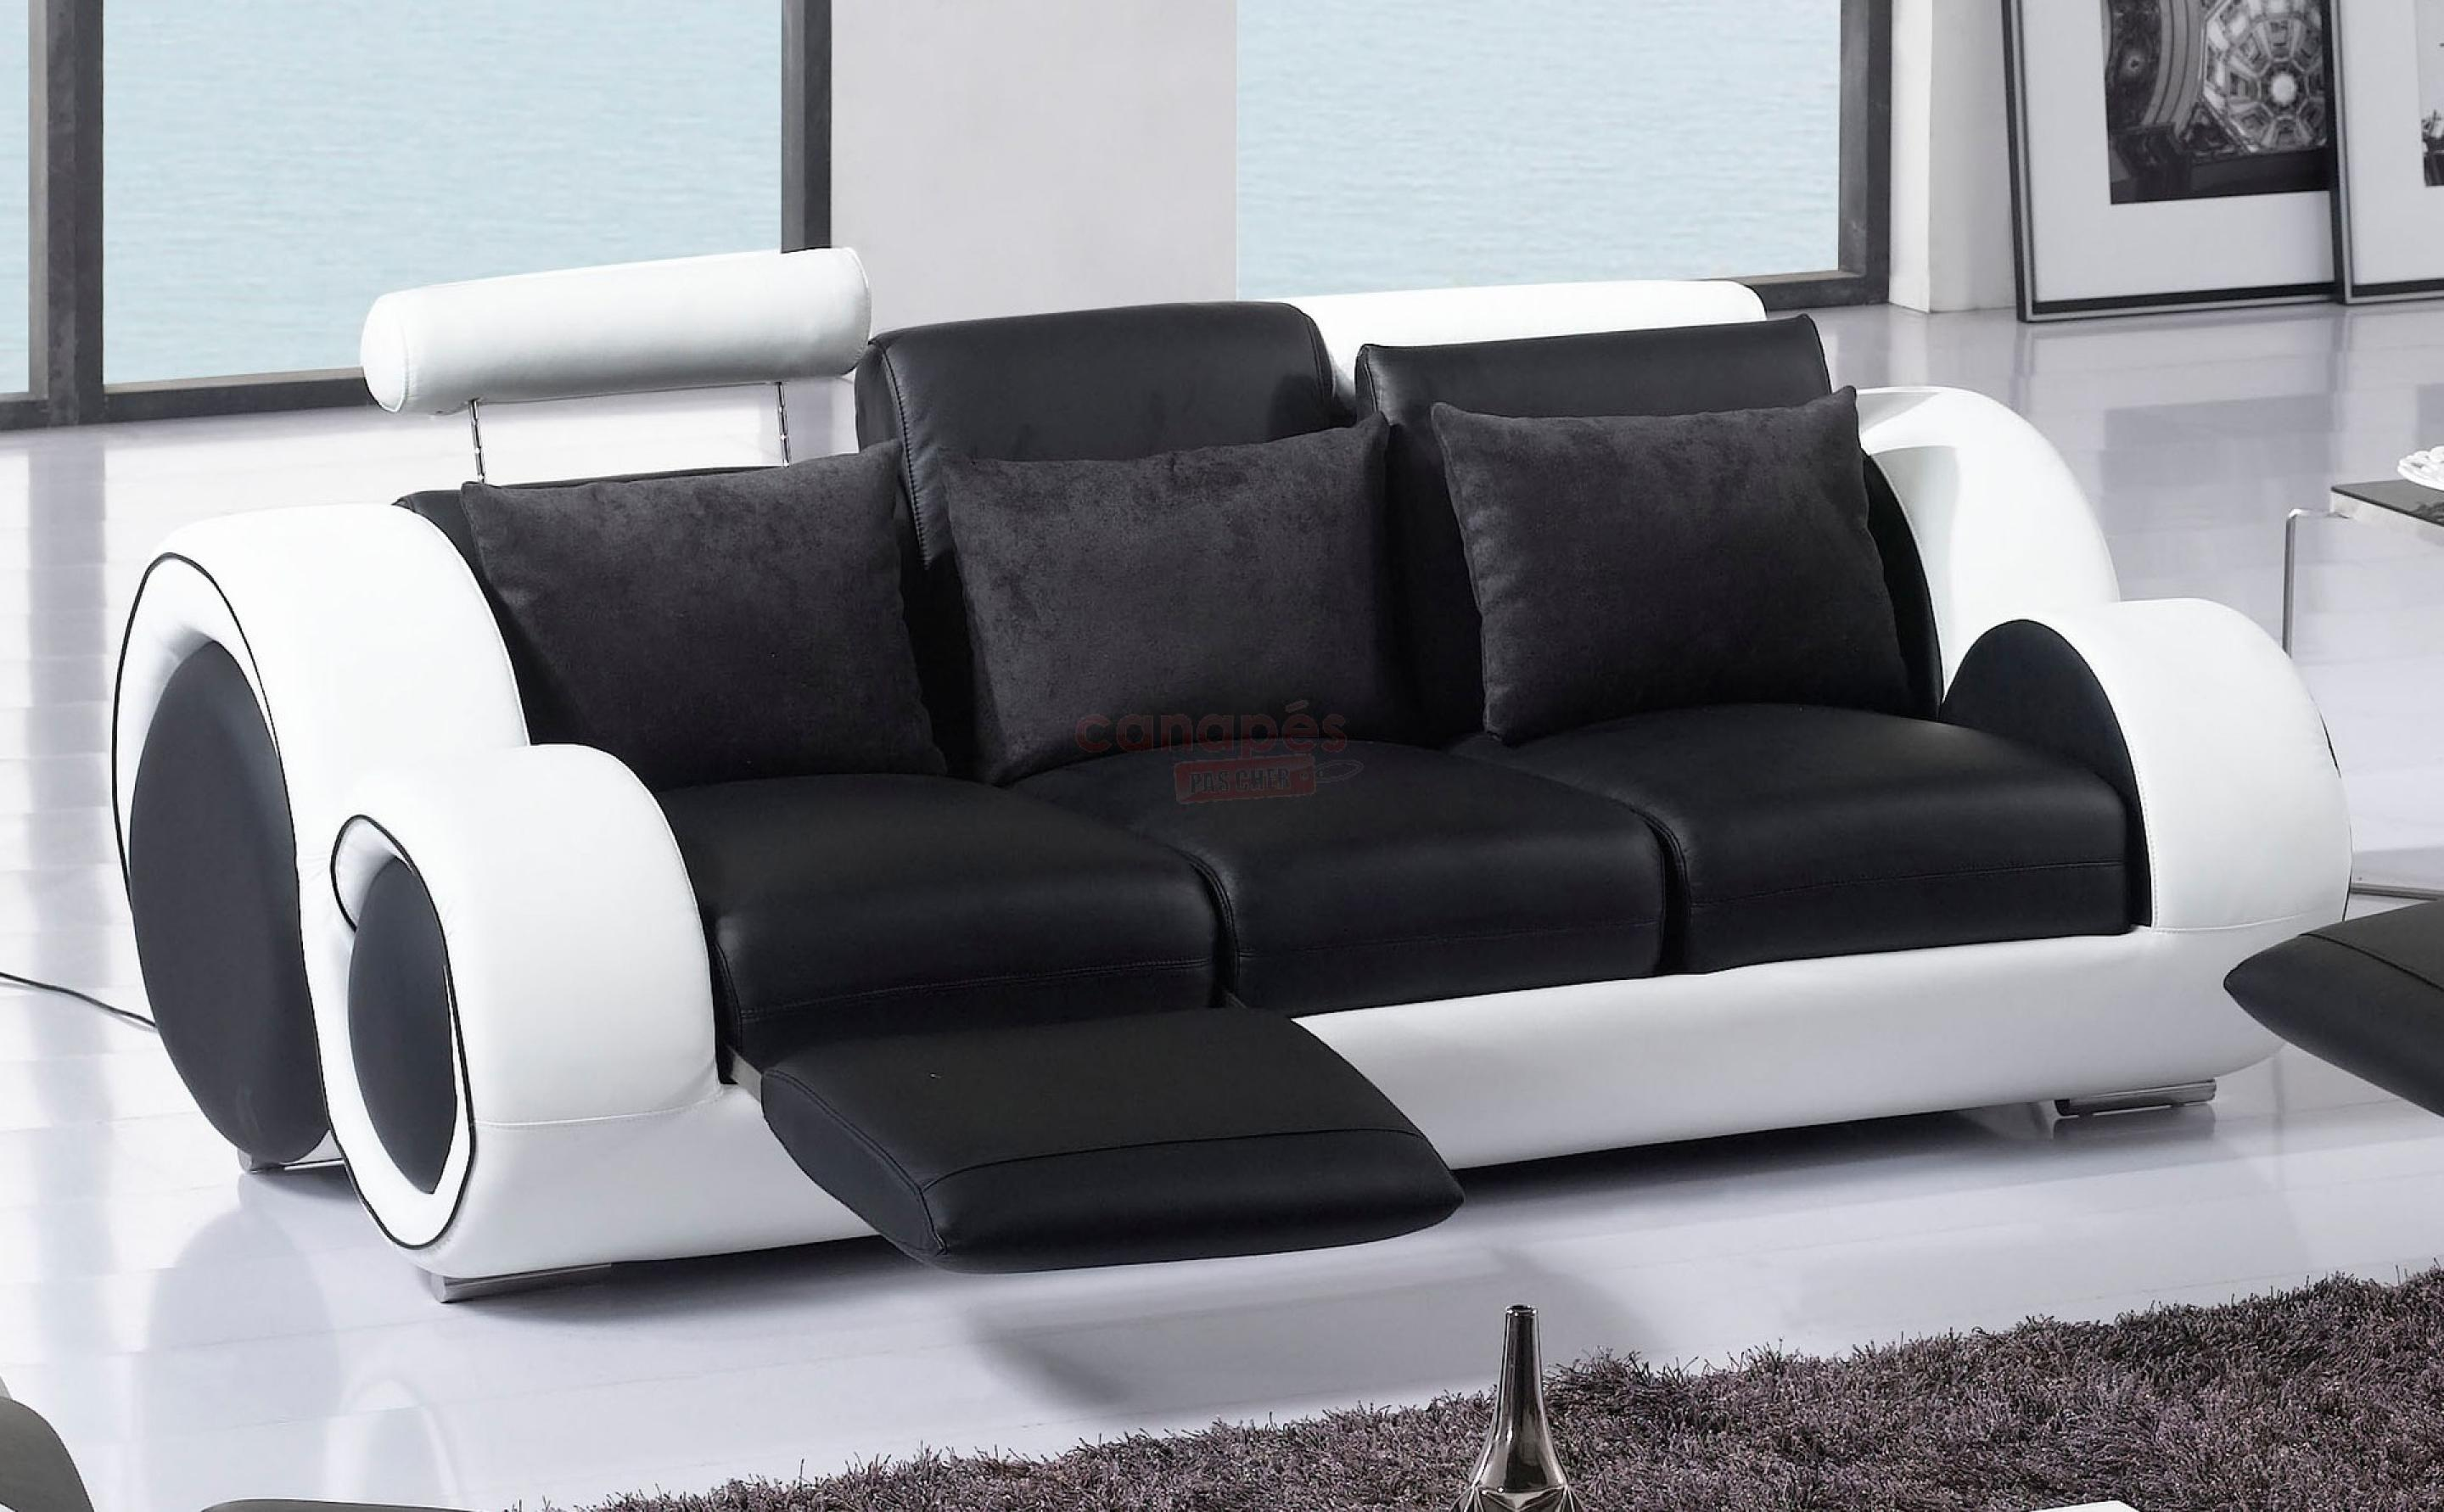 Photos canap convertible cuir 3 places pas cher - Canape convertible cuir 3 places ...